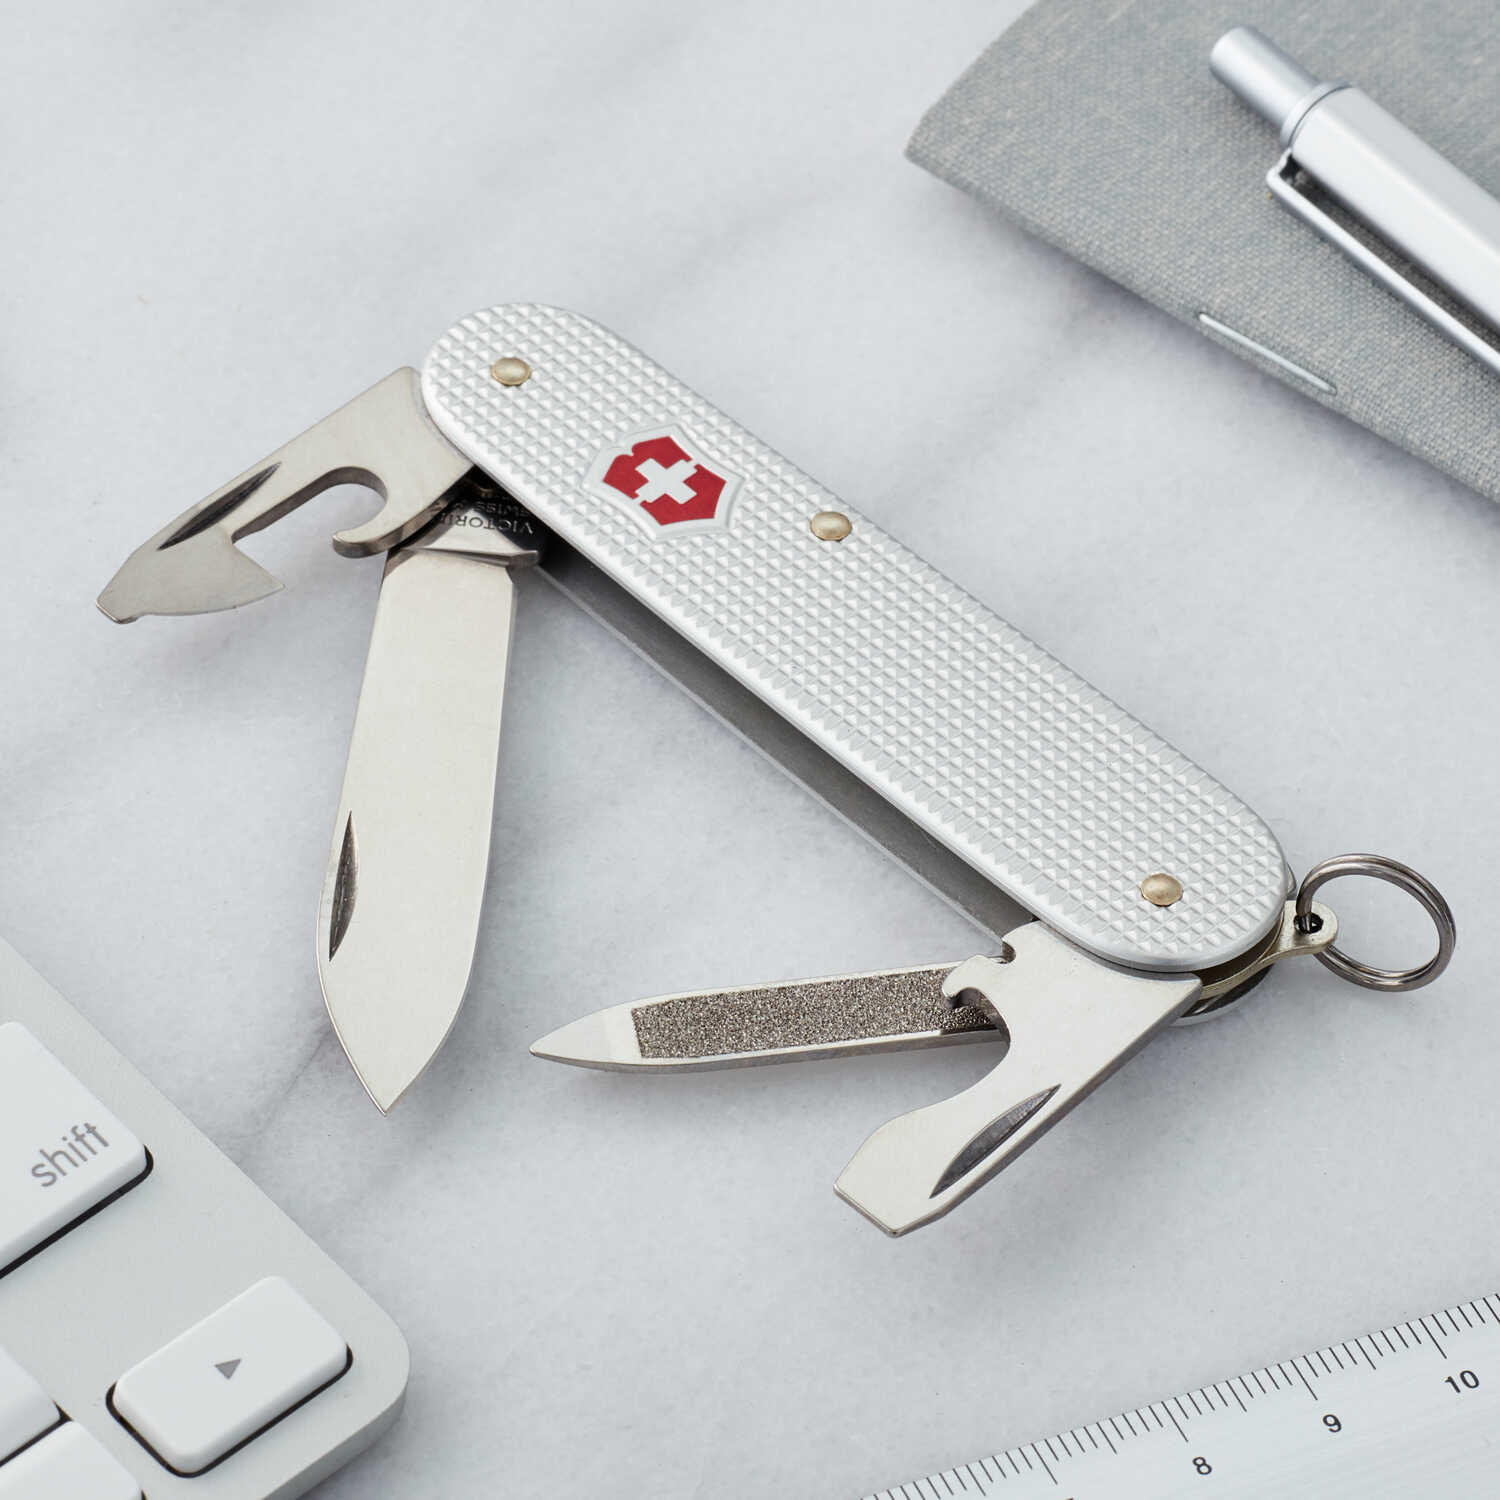 Victorinox Swiss Army  Cadet  Silver  Stainless Steel  3.3 in. Pocket Knife